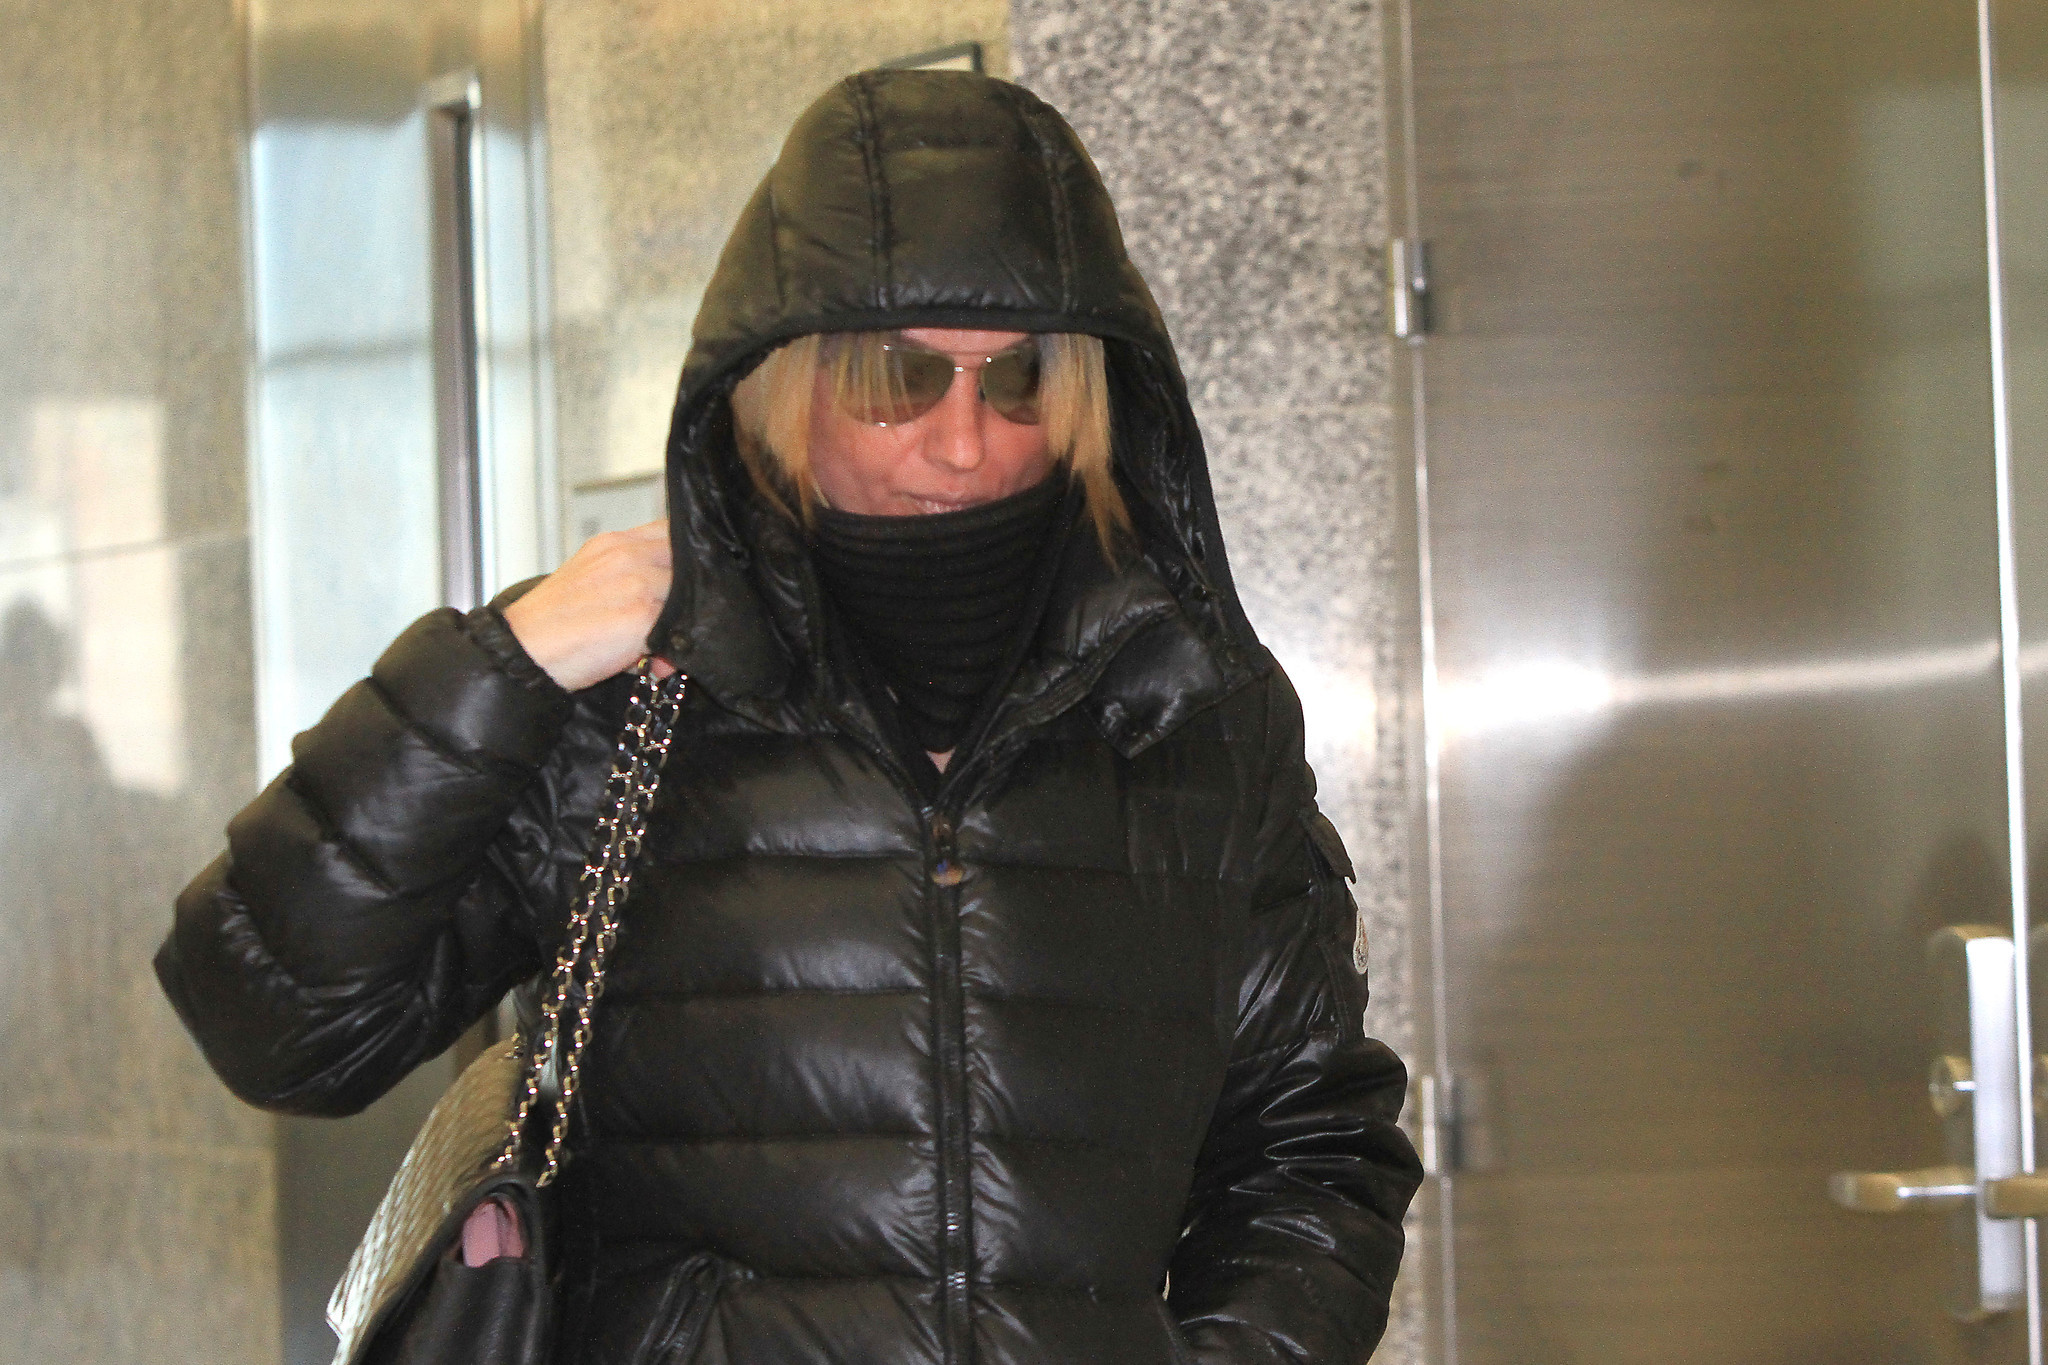 Woman who went on racist tirade on D train caught on video sentenced to probation, anger management